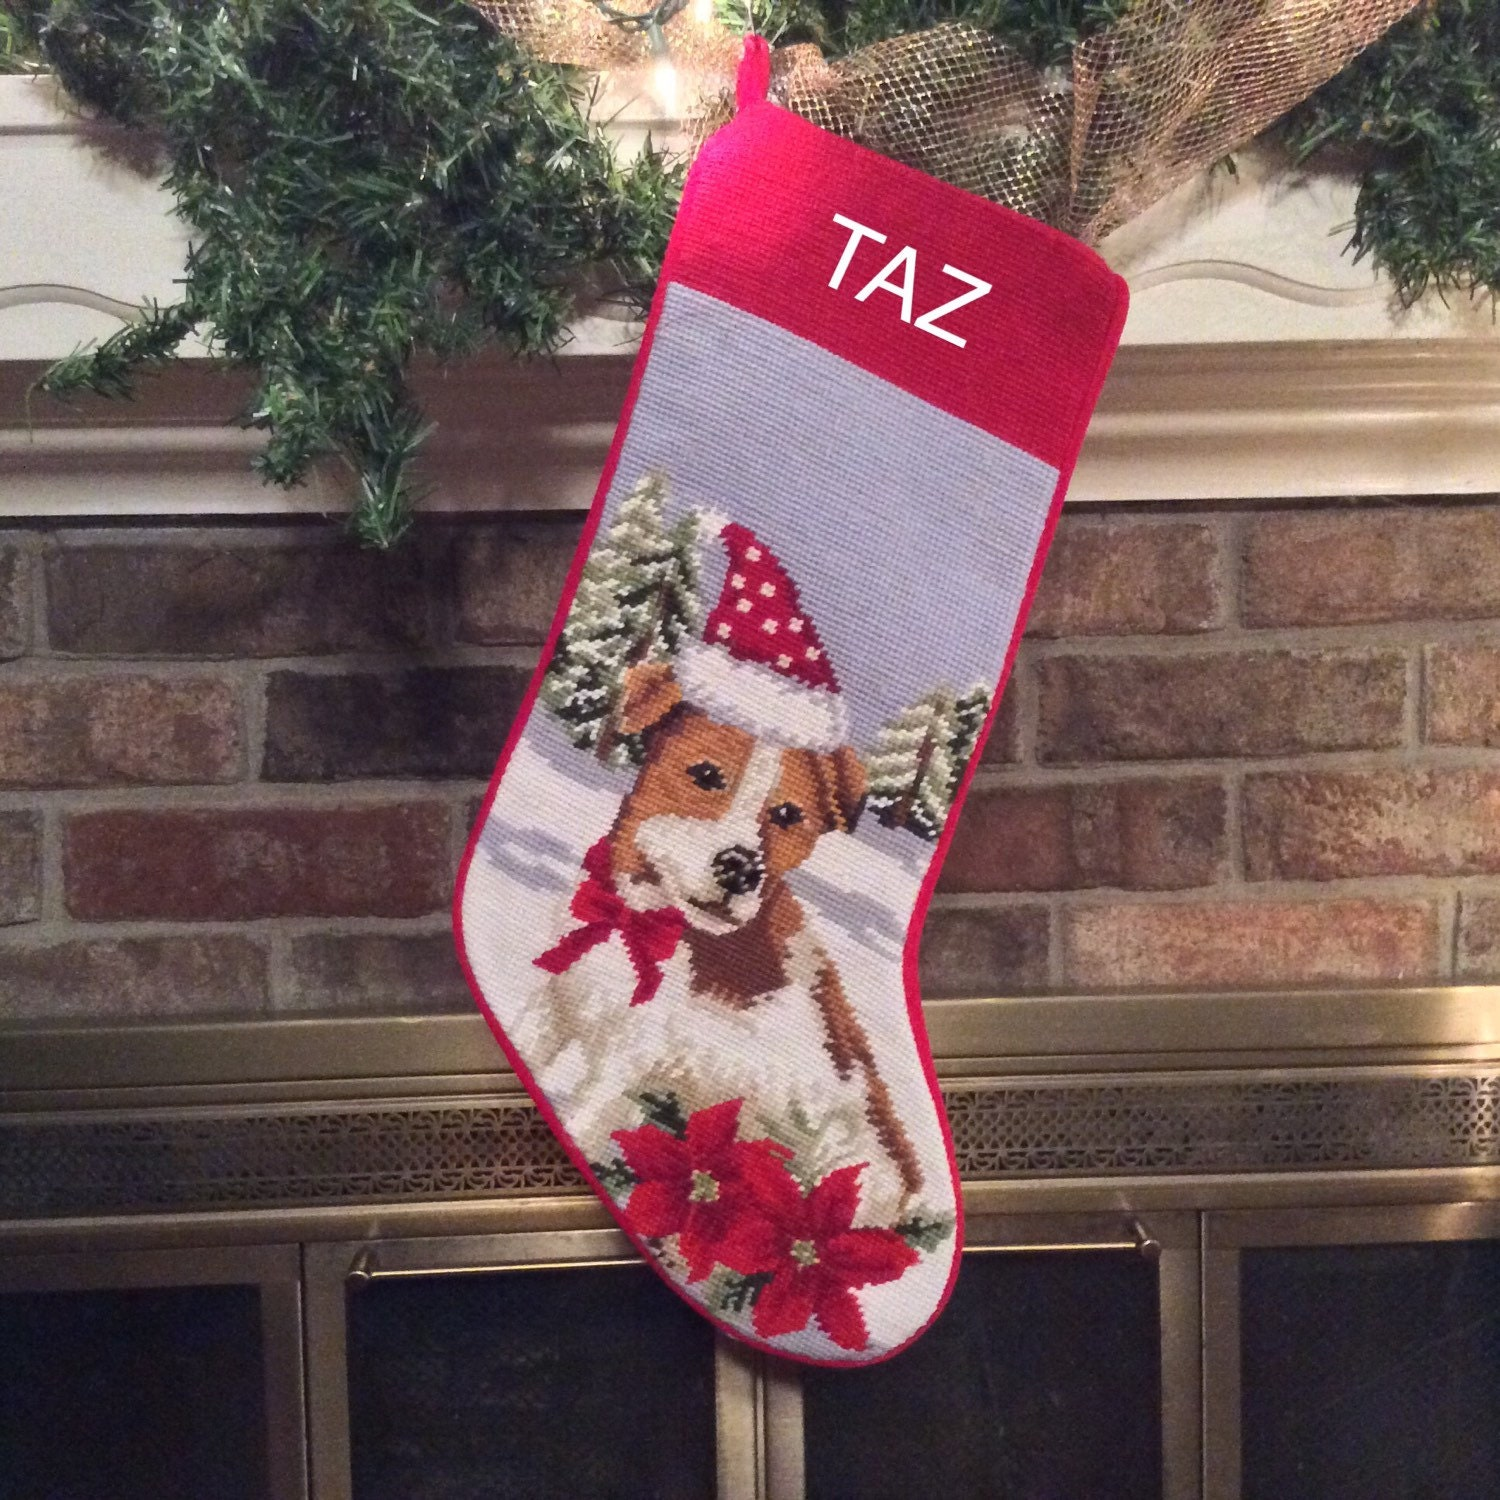 Jack Russell Dog Stocking Personalized Christmas Stockings